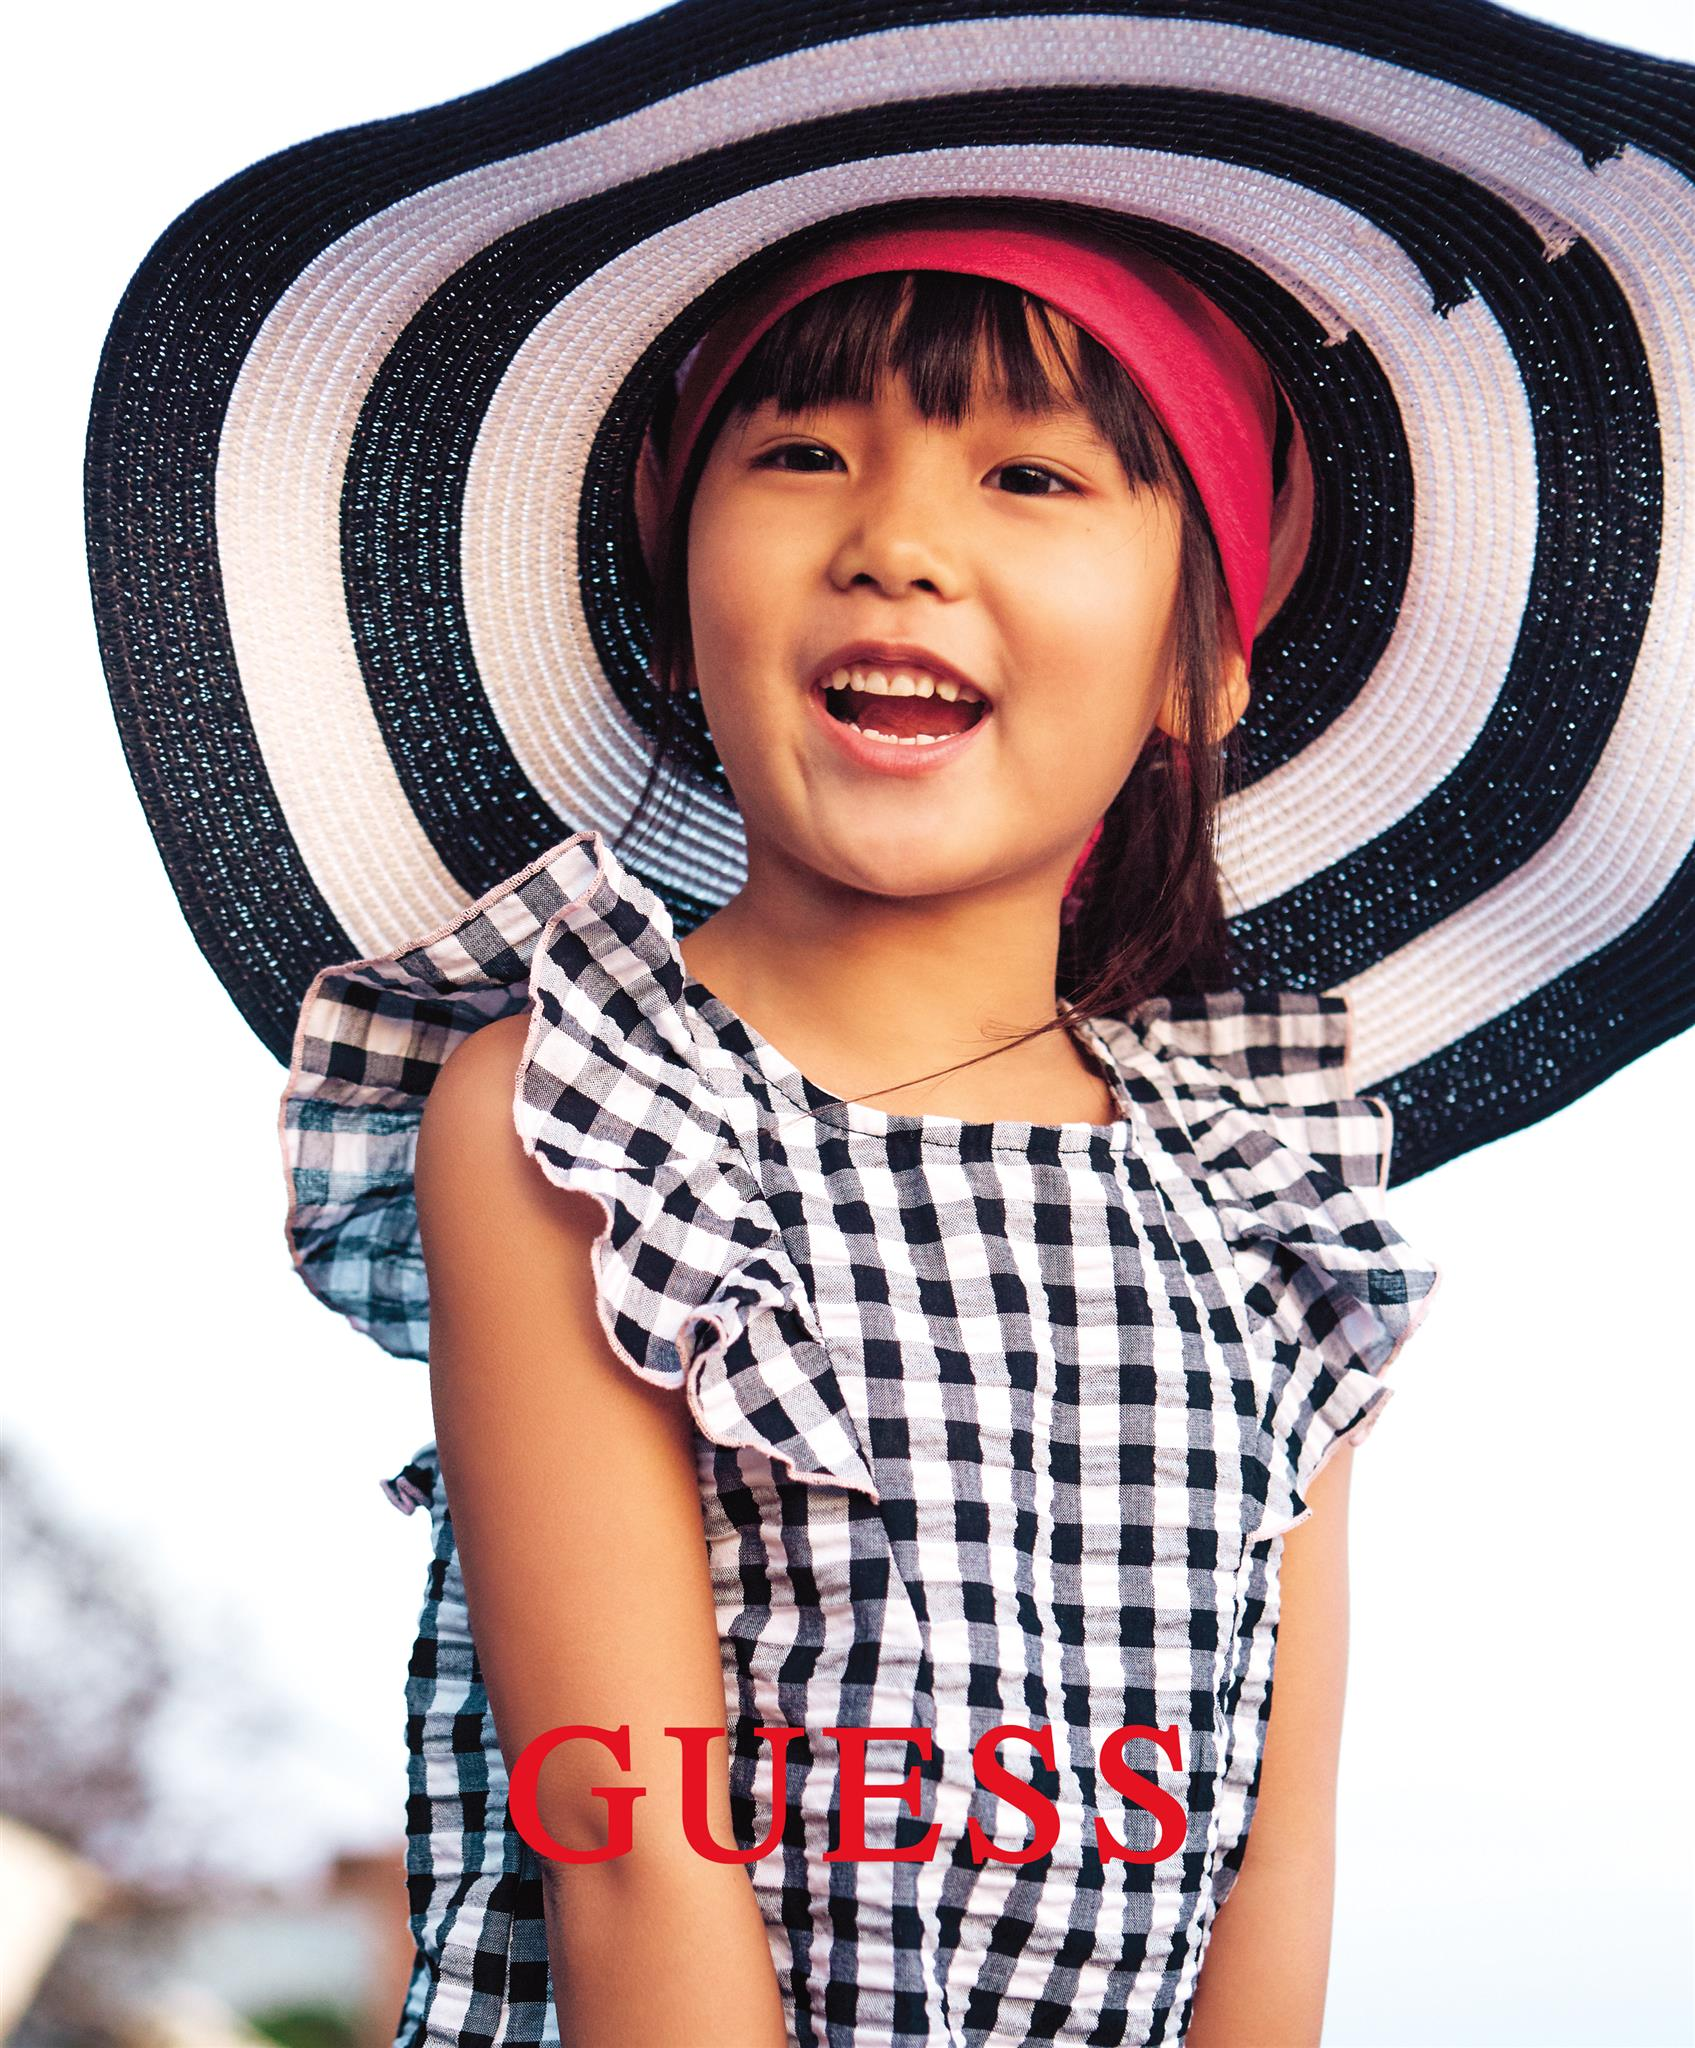 599_GUESS_Kids_Sp18_V29